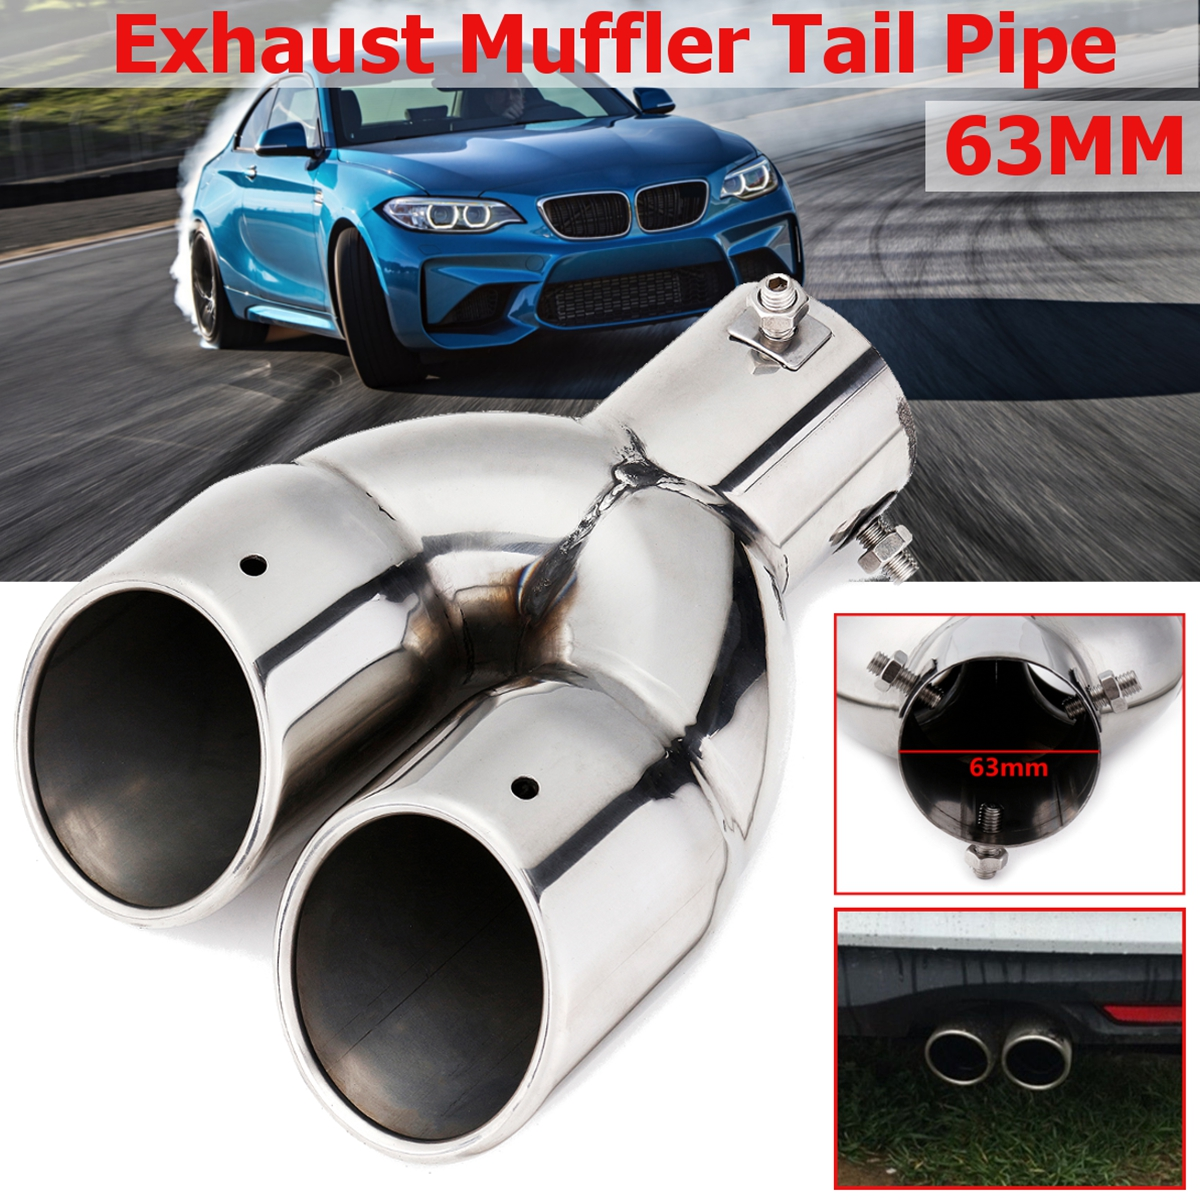 Pipe-Tip Throat-Liner-Pipe Chrome-Muffler Stainless-Steel Universal Exhaust Double-Outlet title=